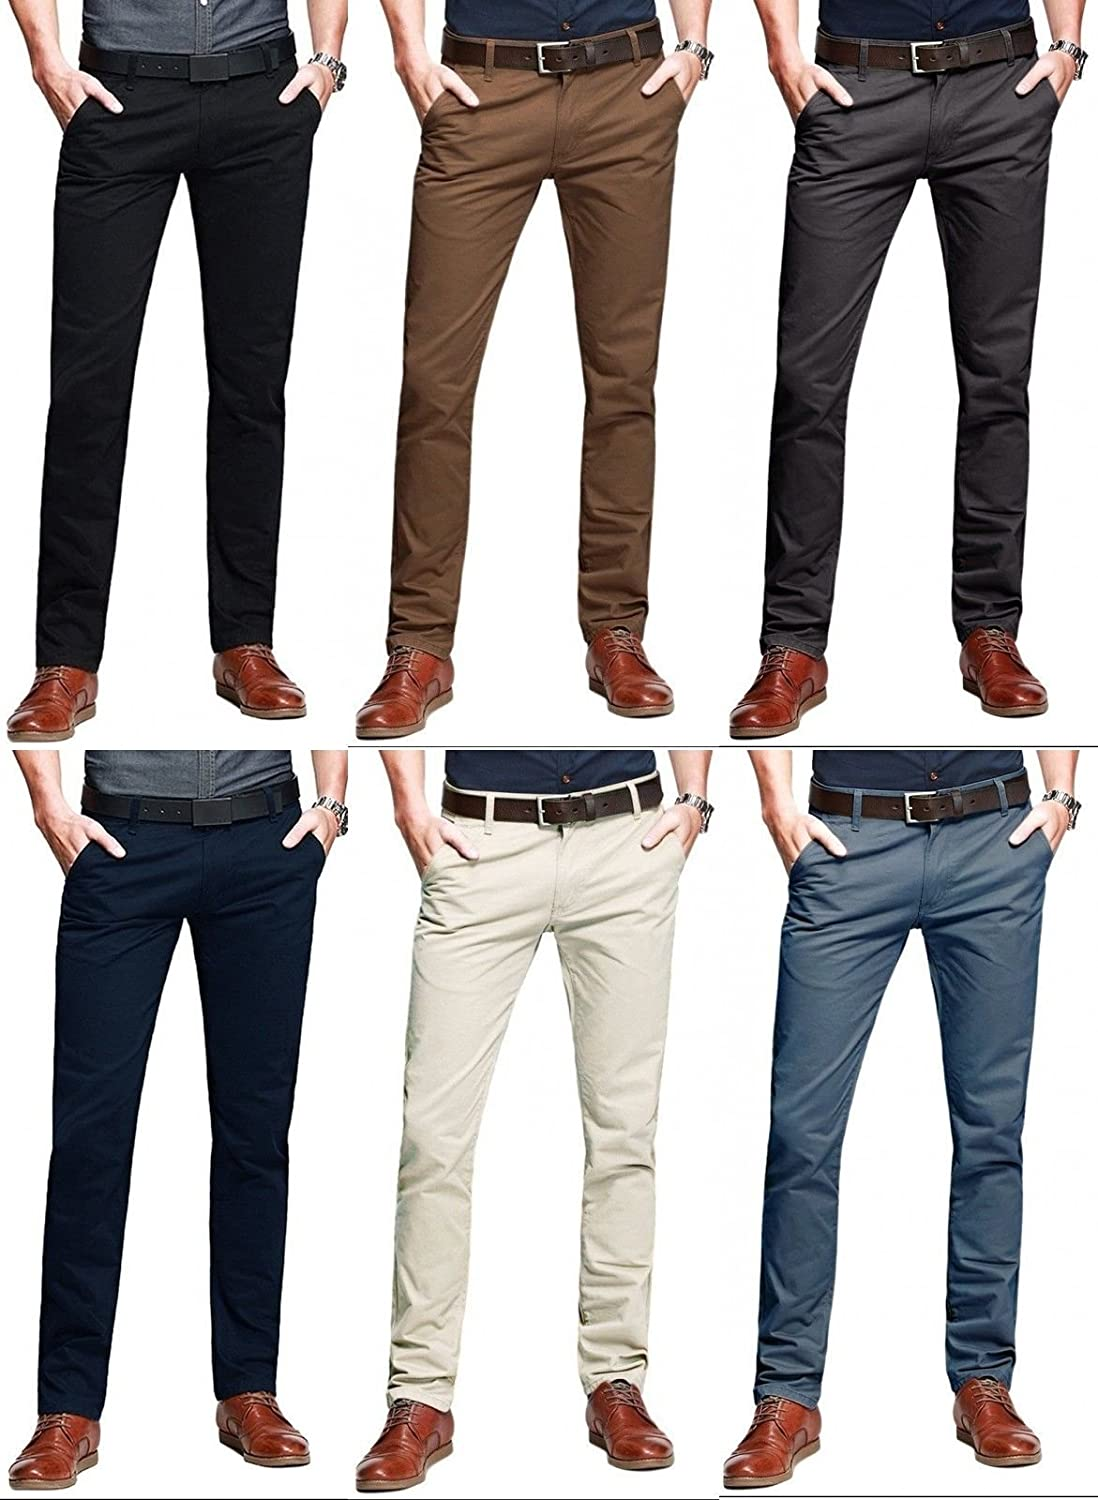 2b59c564a110c0 STALLION LONDON Herren Chino Hose Skinny - Slim Fit Stretch Chinohose  Business Casual: Amazon.de: Bekleidung